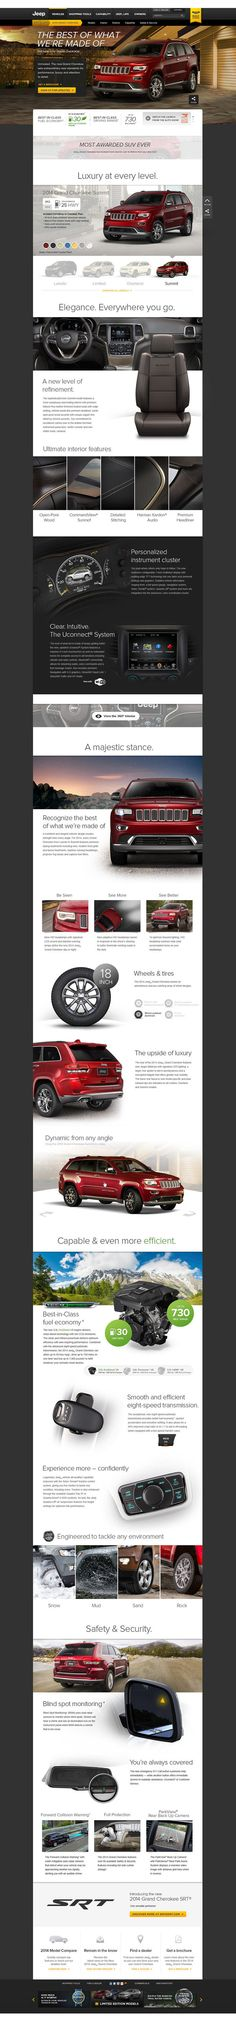 Jeep.com by Mikhail St-Denis, via Behance